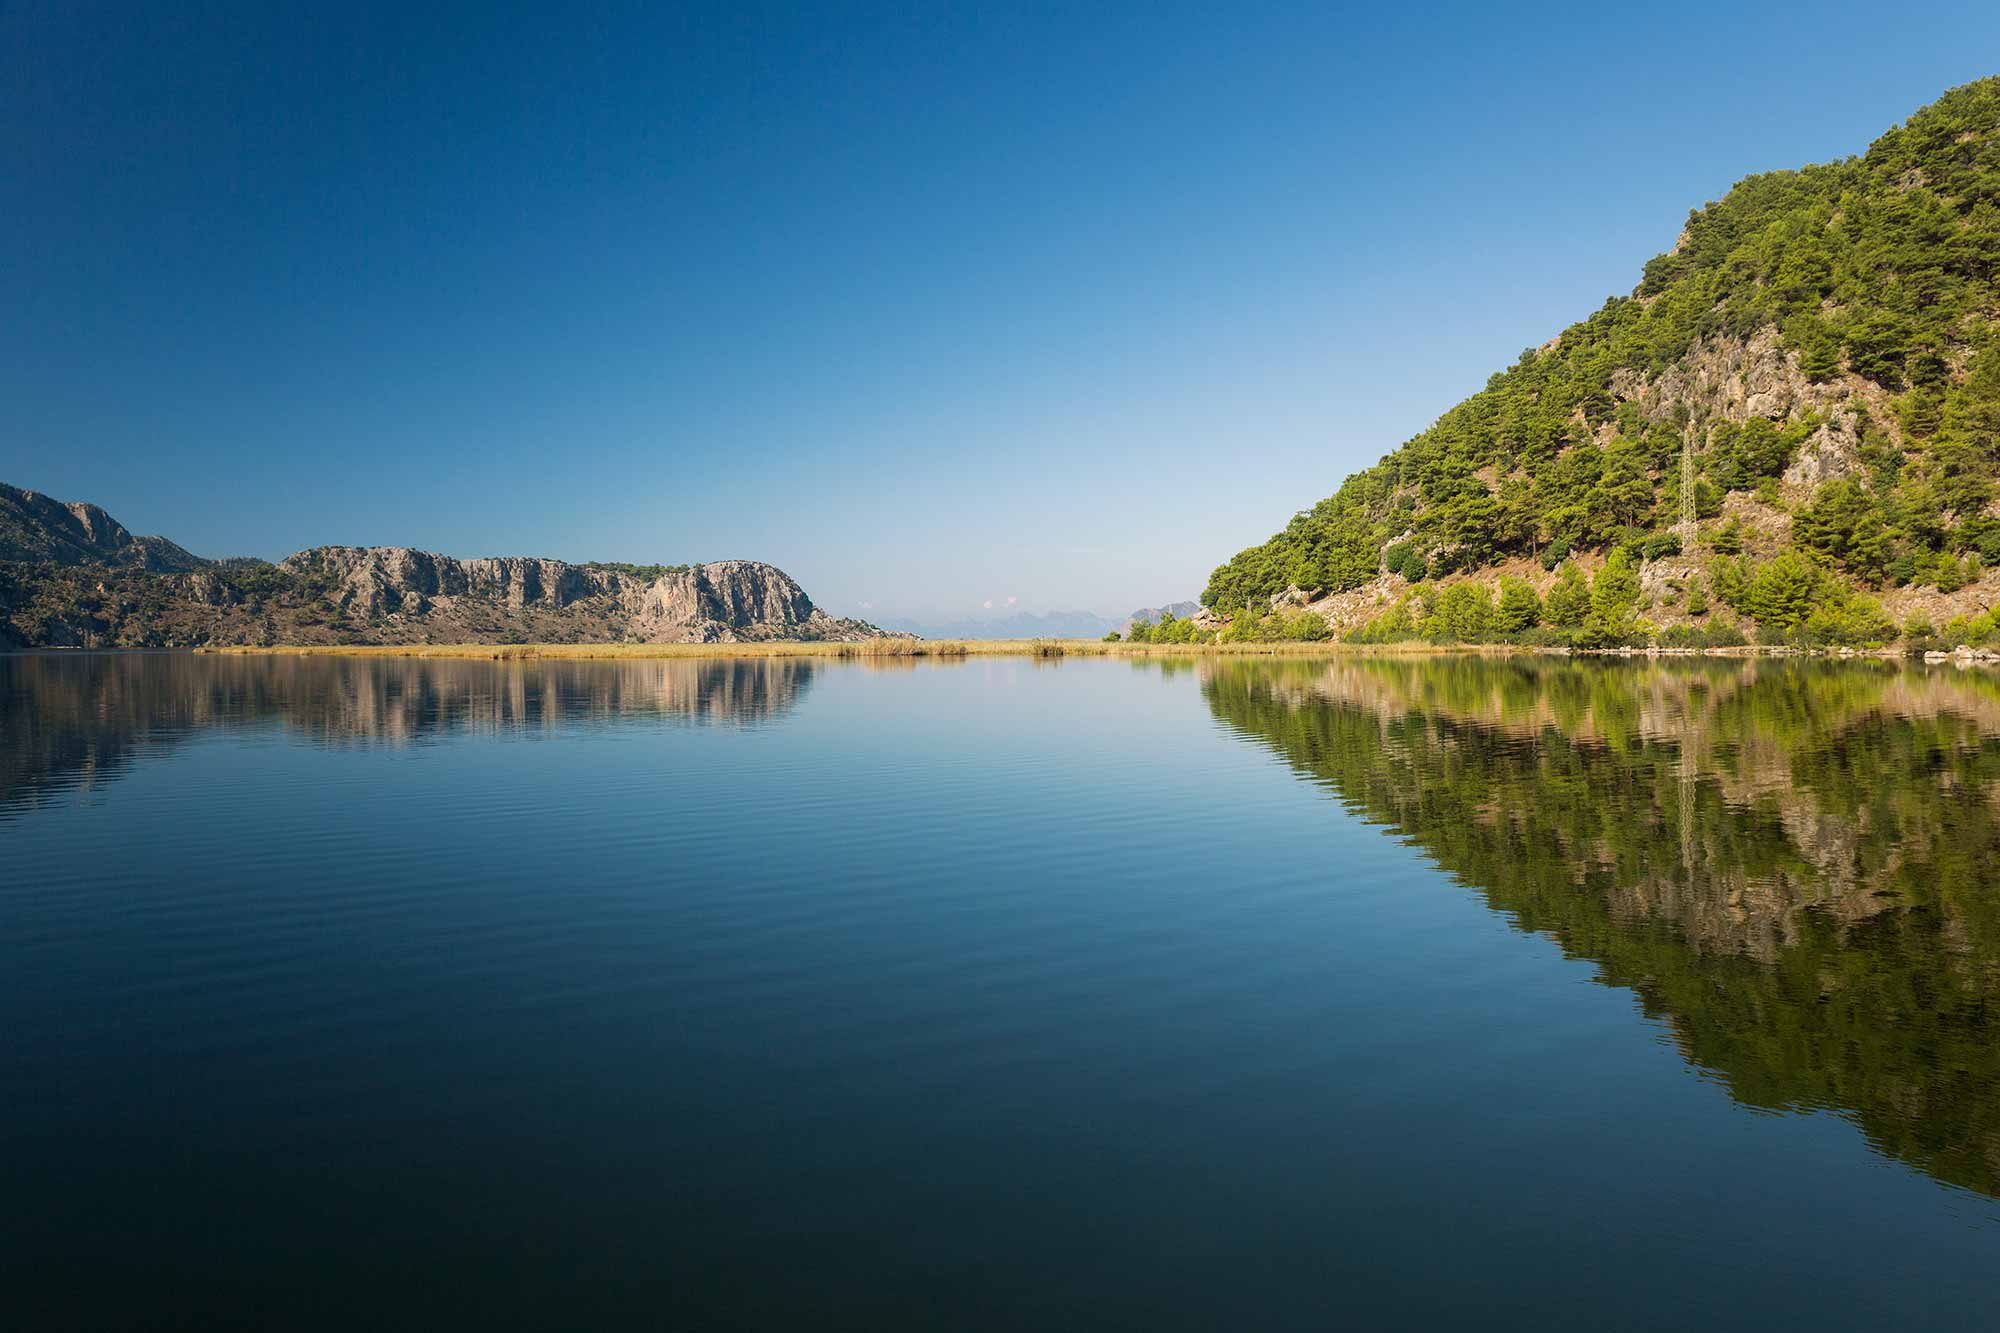 reflection-dalyan-Sülüngür-Gölü-lake-reflection-turkey